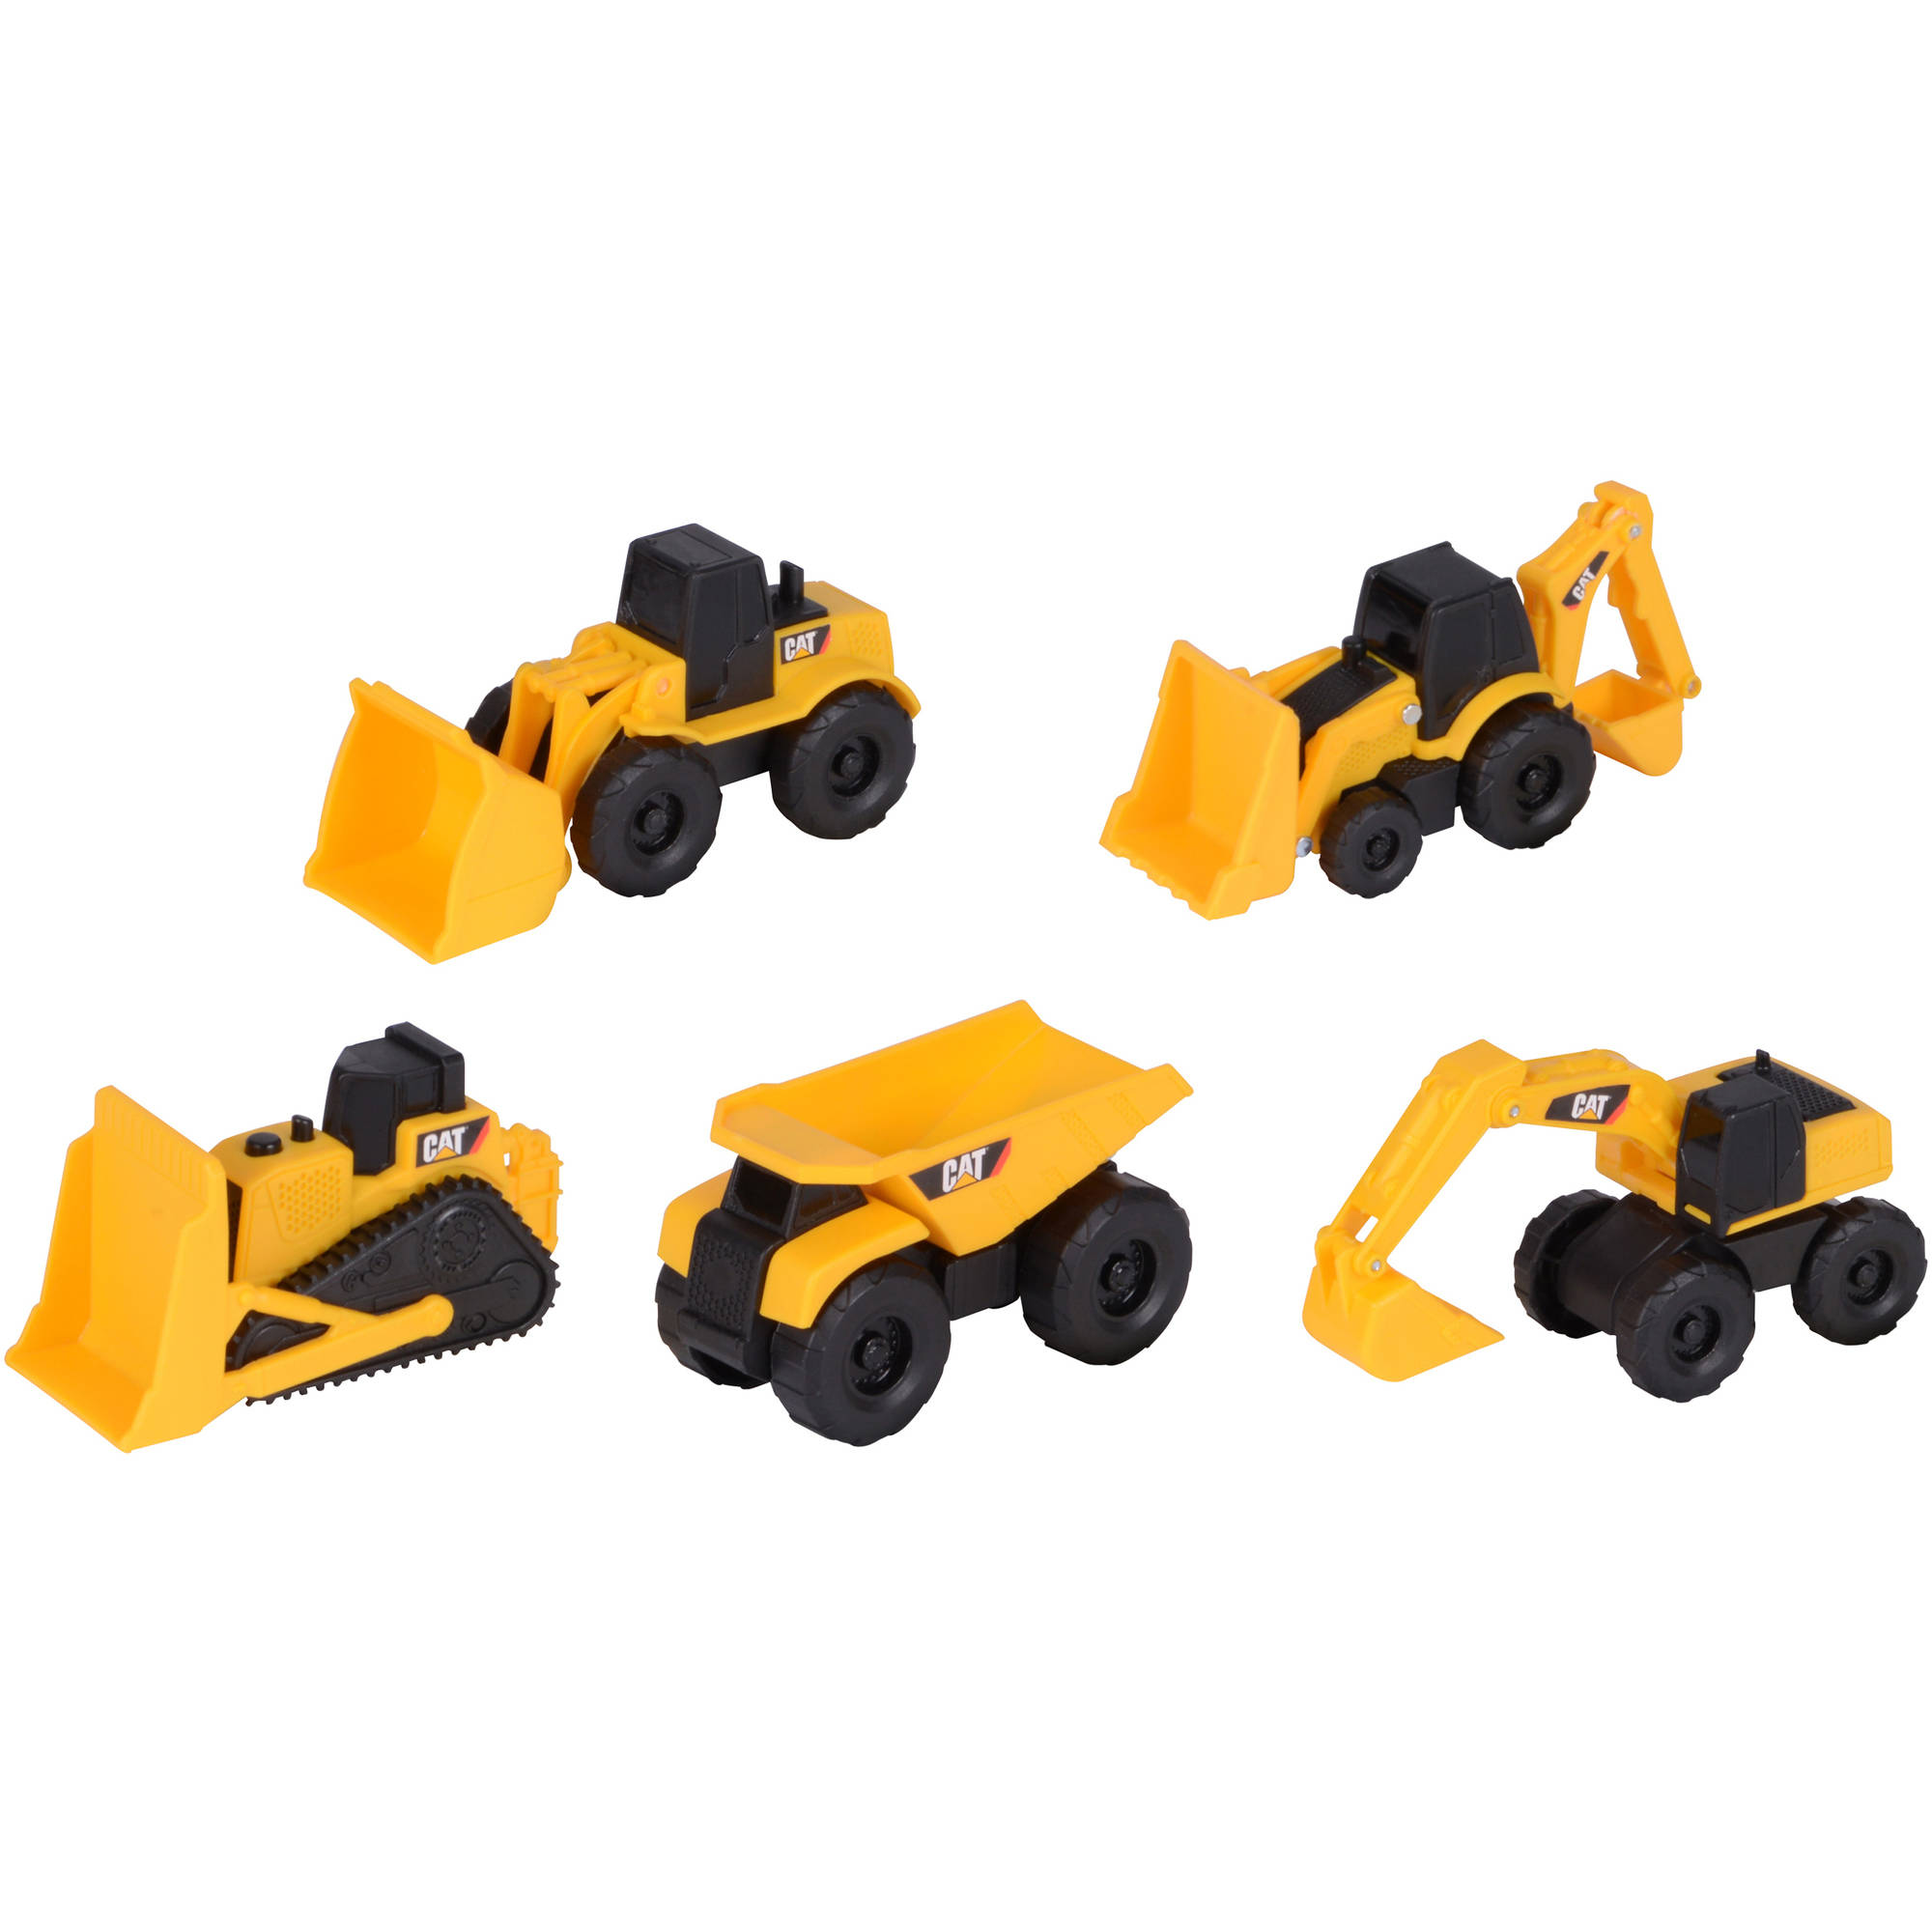 Caterpillar Construction Mini Machines 5 Pack